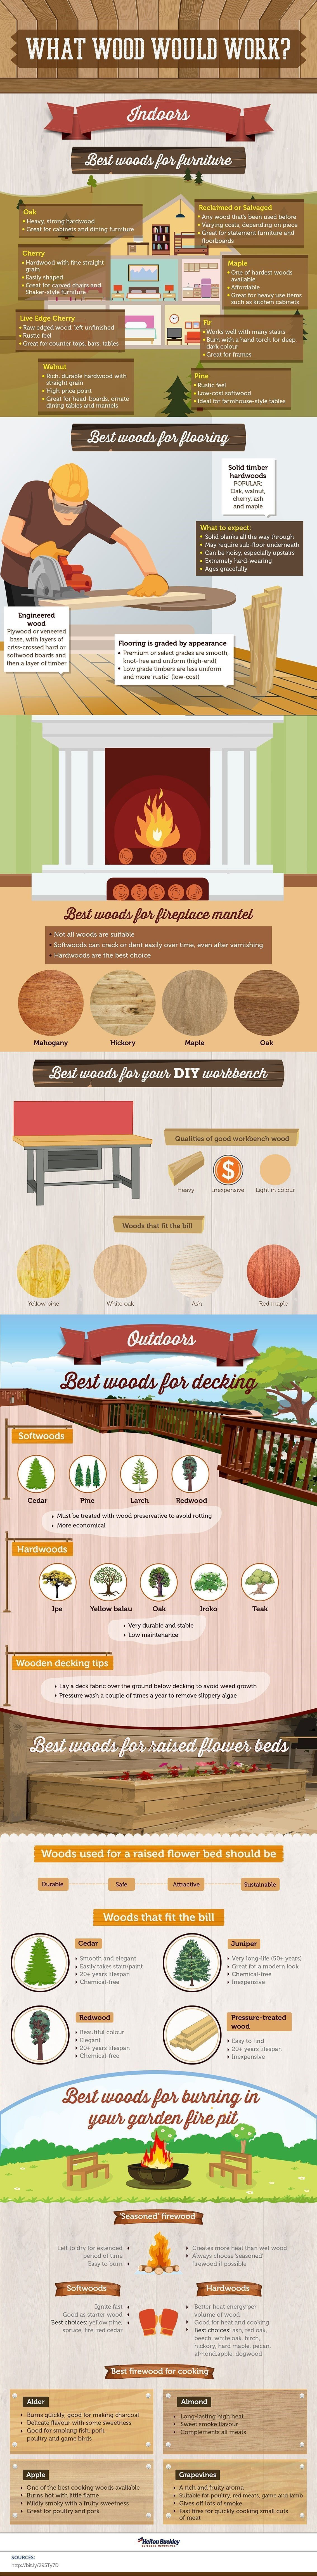 Which Wood is Best for Furniture, Flooring, Outdoors ...